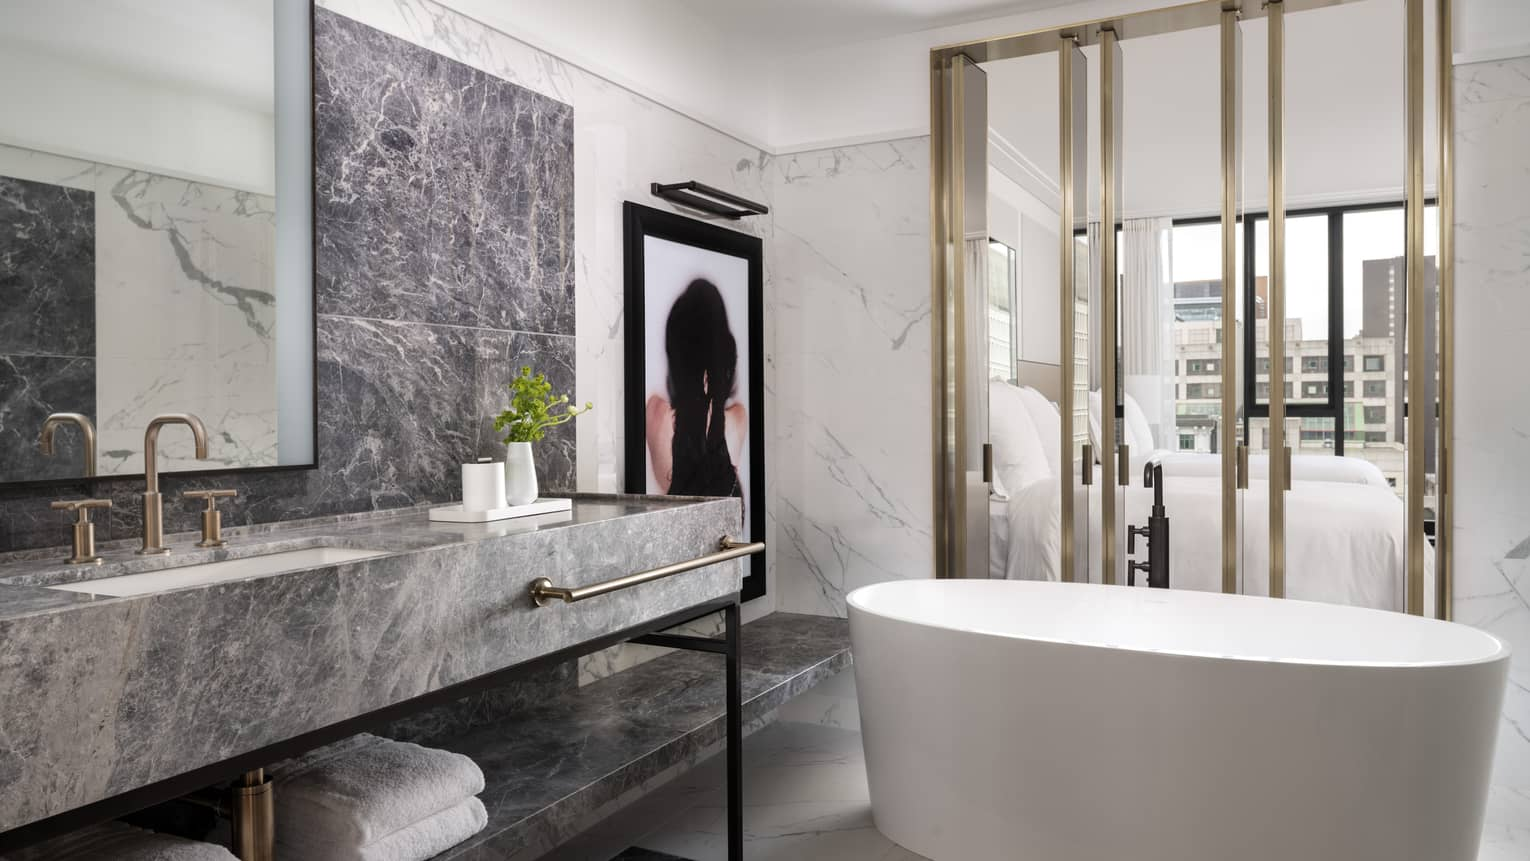 Spa-like guest bathroom with large white soaker tub, grey marbled vanity, modern artwork